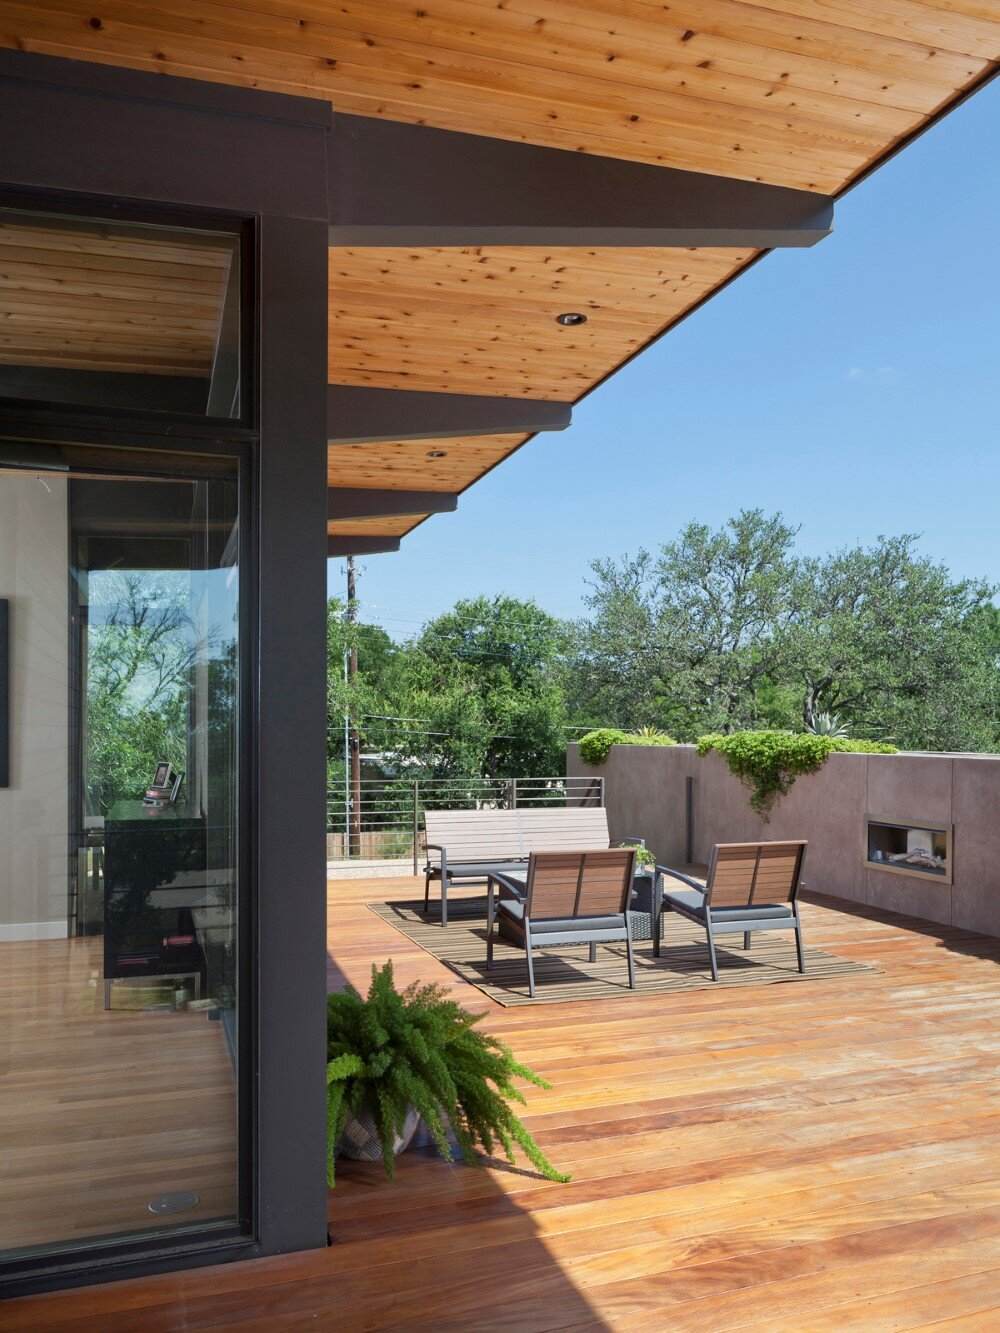 Modern architecture and spacious roof deck Barton Hills Residence - HomeWorldDesign (2) (Custom)